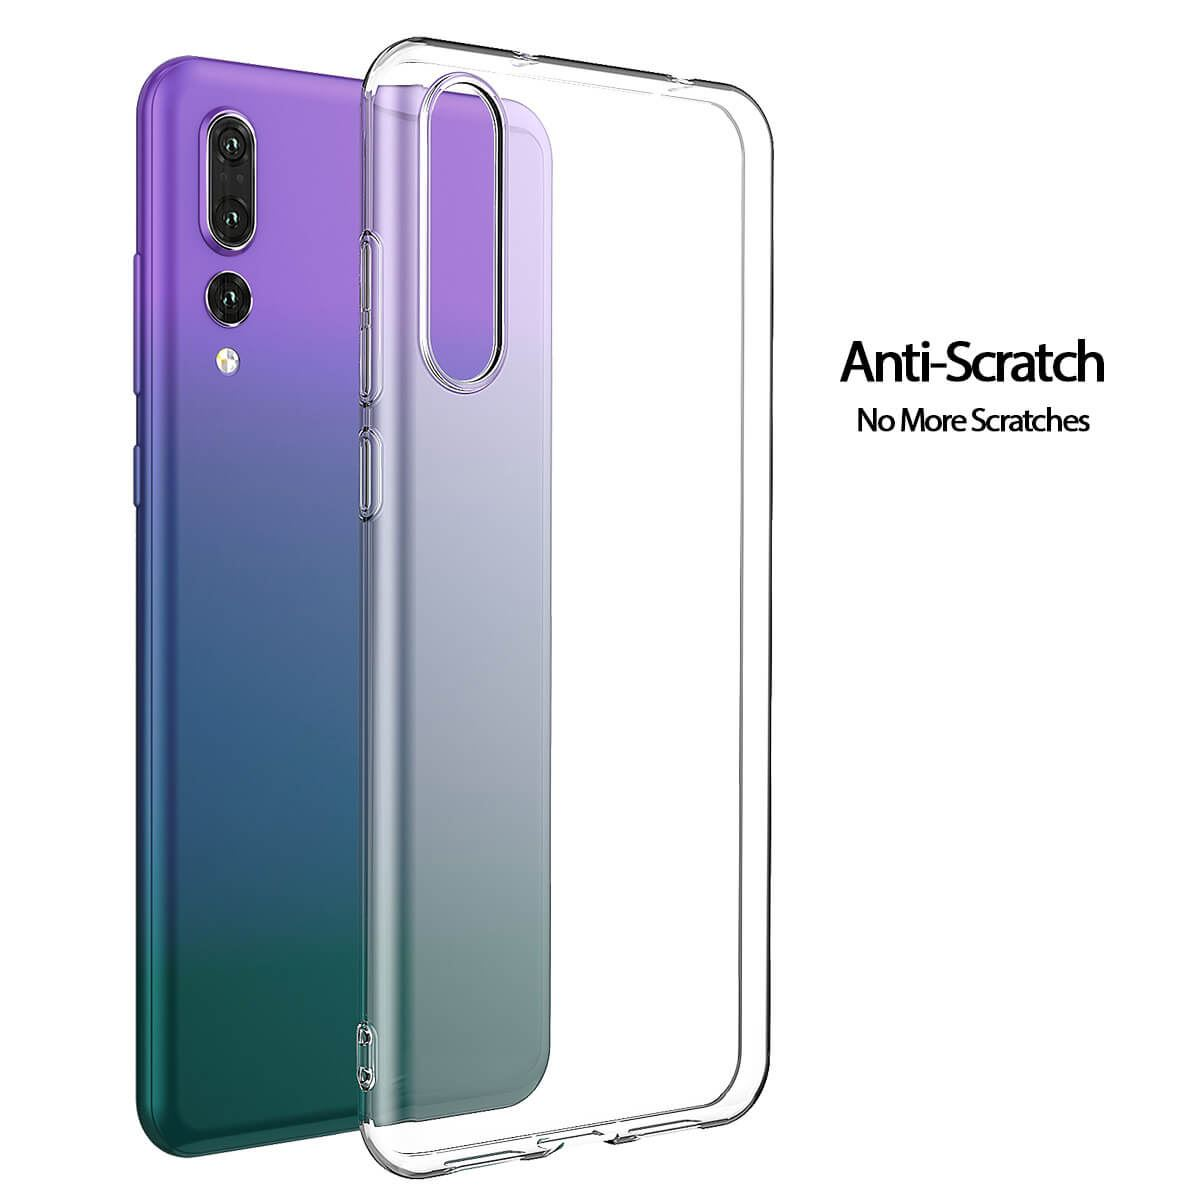 Shockproof-Silicone-Protective-Clear-Gel-Cover-Case-For-Huawei-P20-Pro-P-Smart thumbnail 64